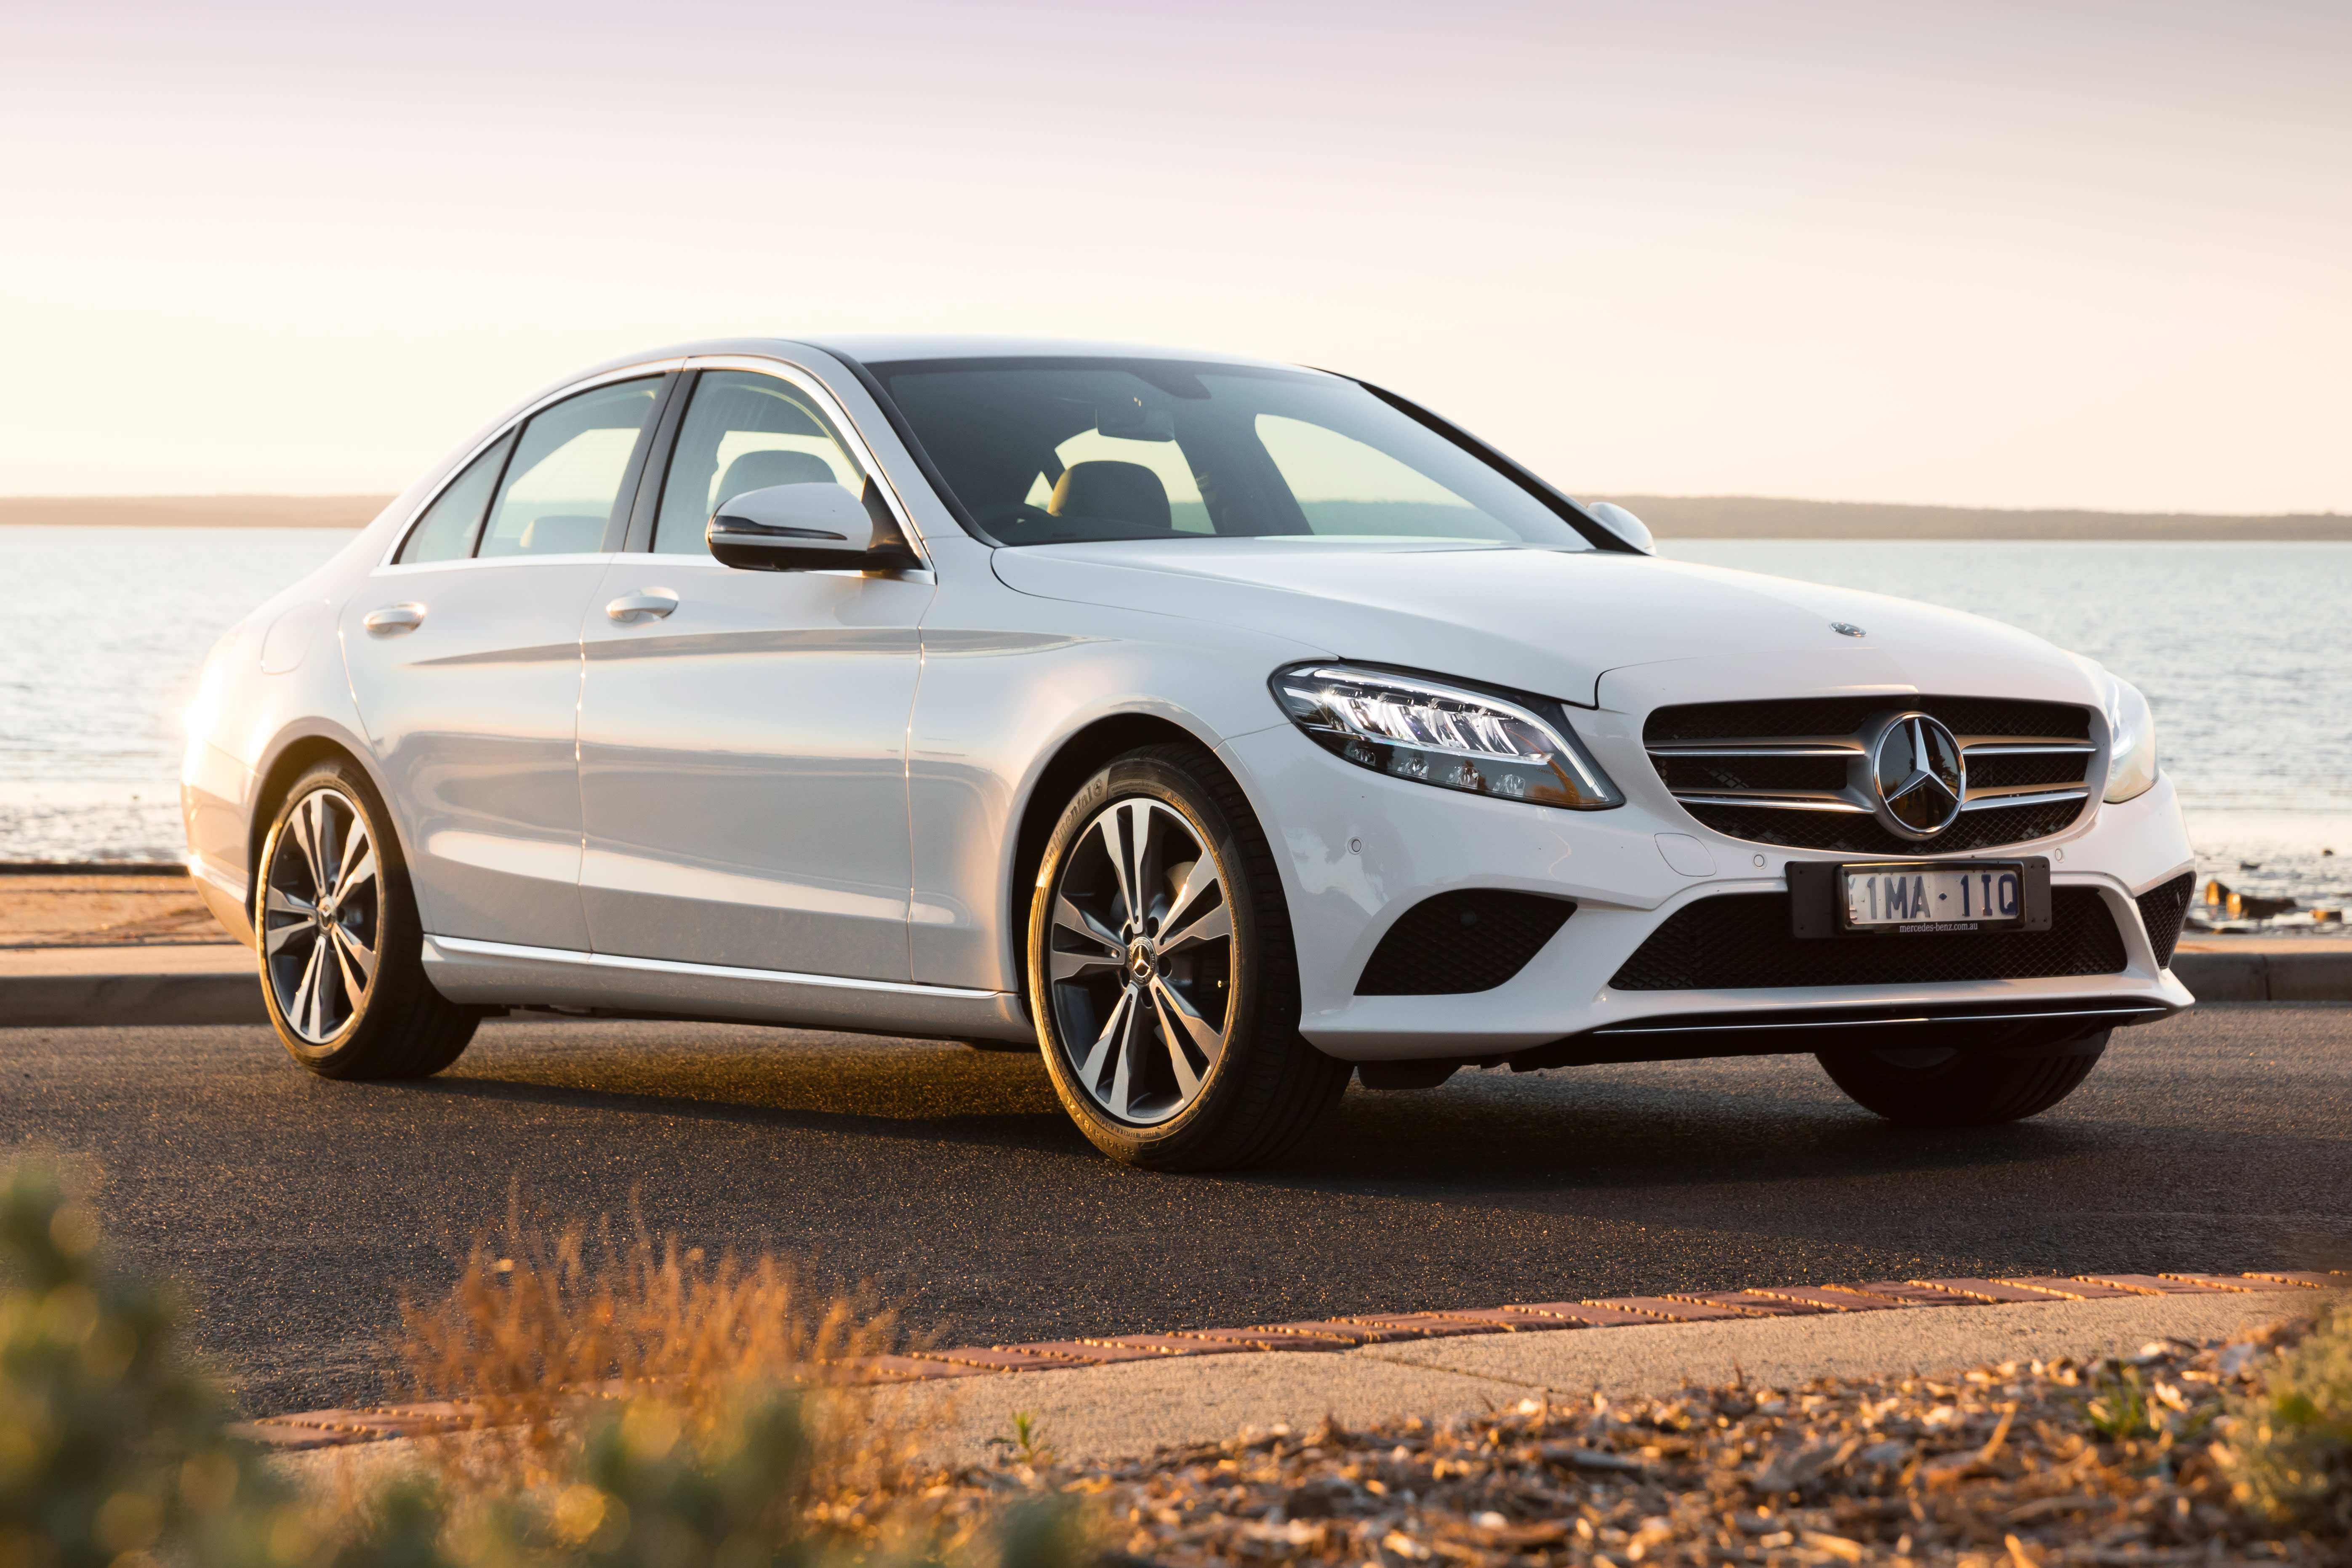 75 New C Class Mercedes 2019 Release Specs And Review Prices with C Class Mercedes 2019 Release Specs And Review